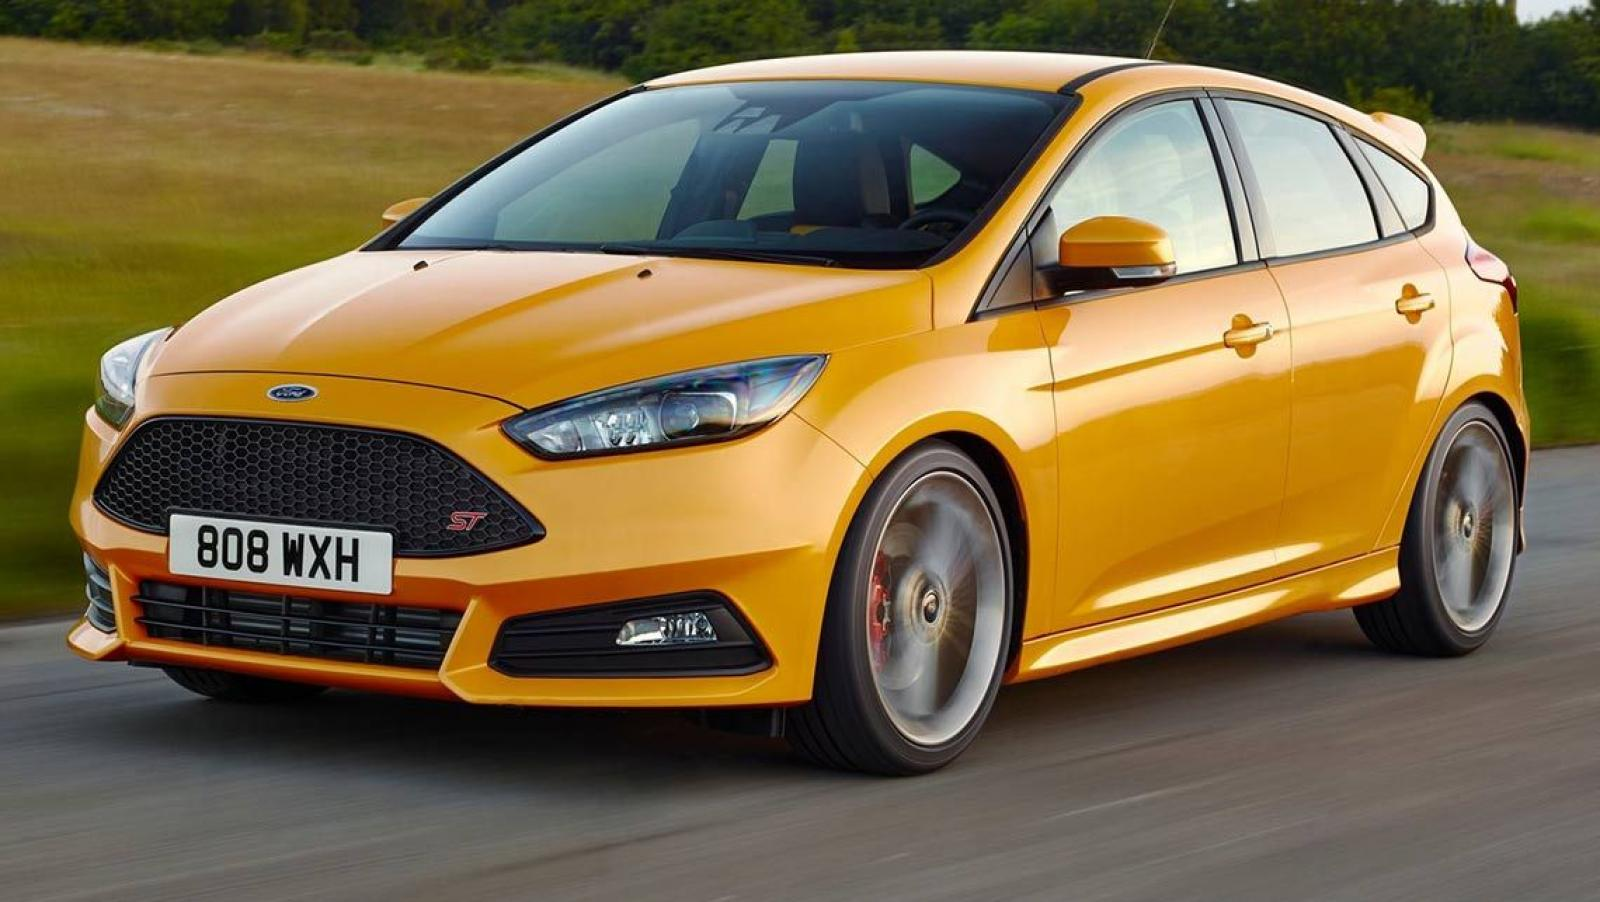 2015 ford focus st information and photos zombiedrive. Black Bedroom Furniture Sets. Home Design Ideas